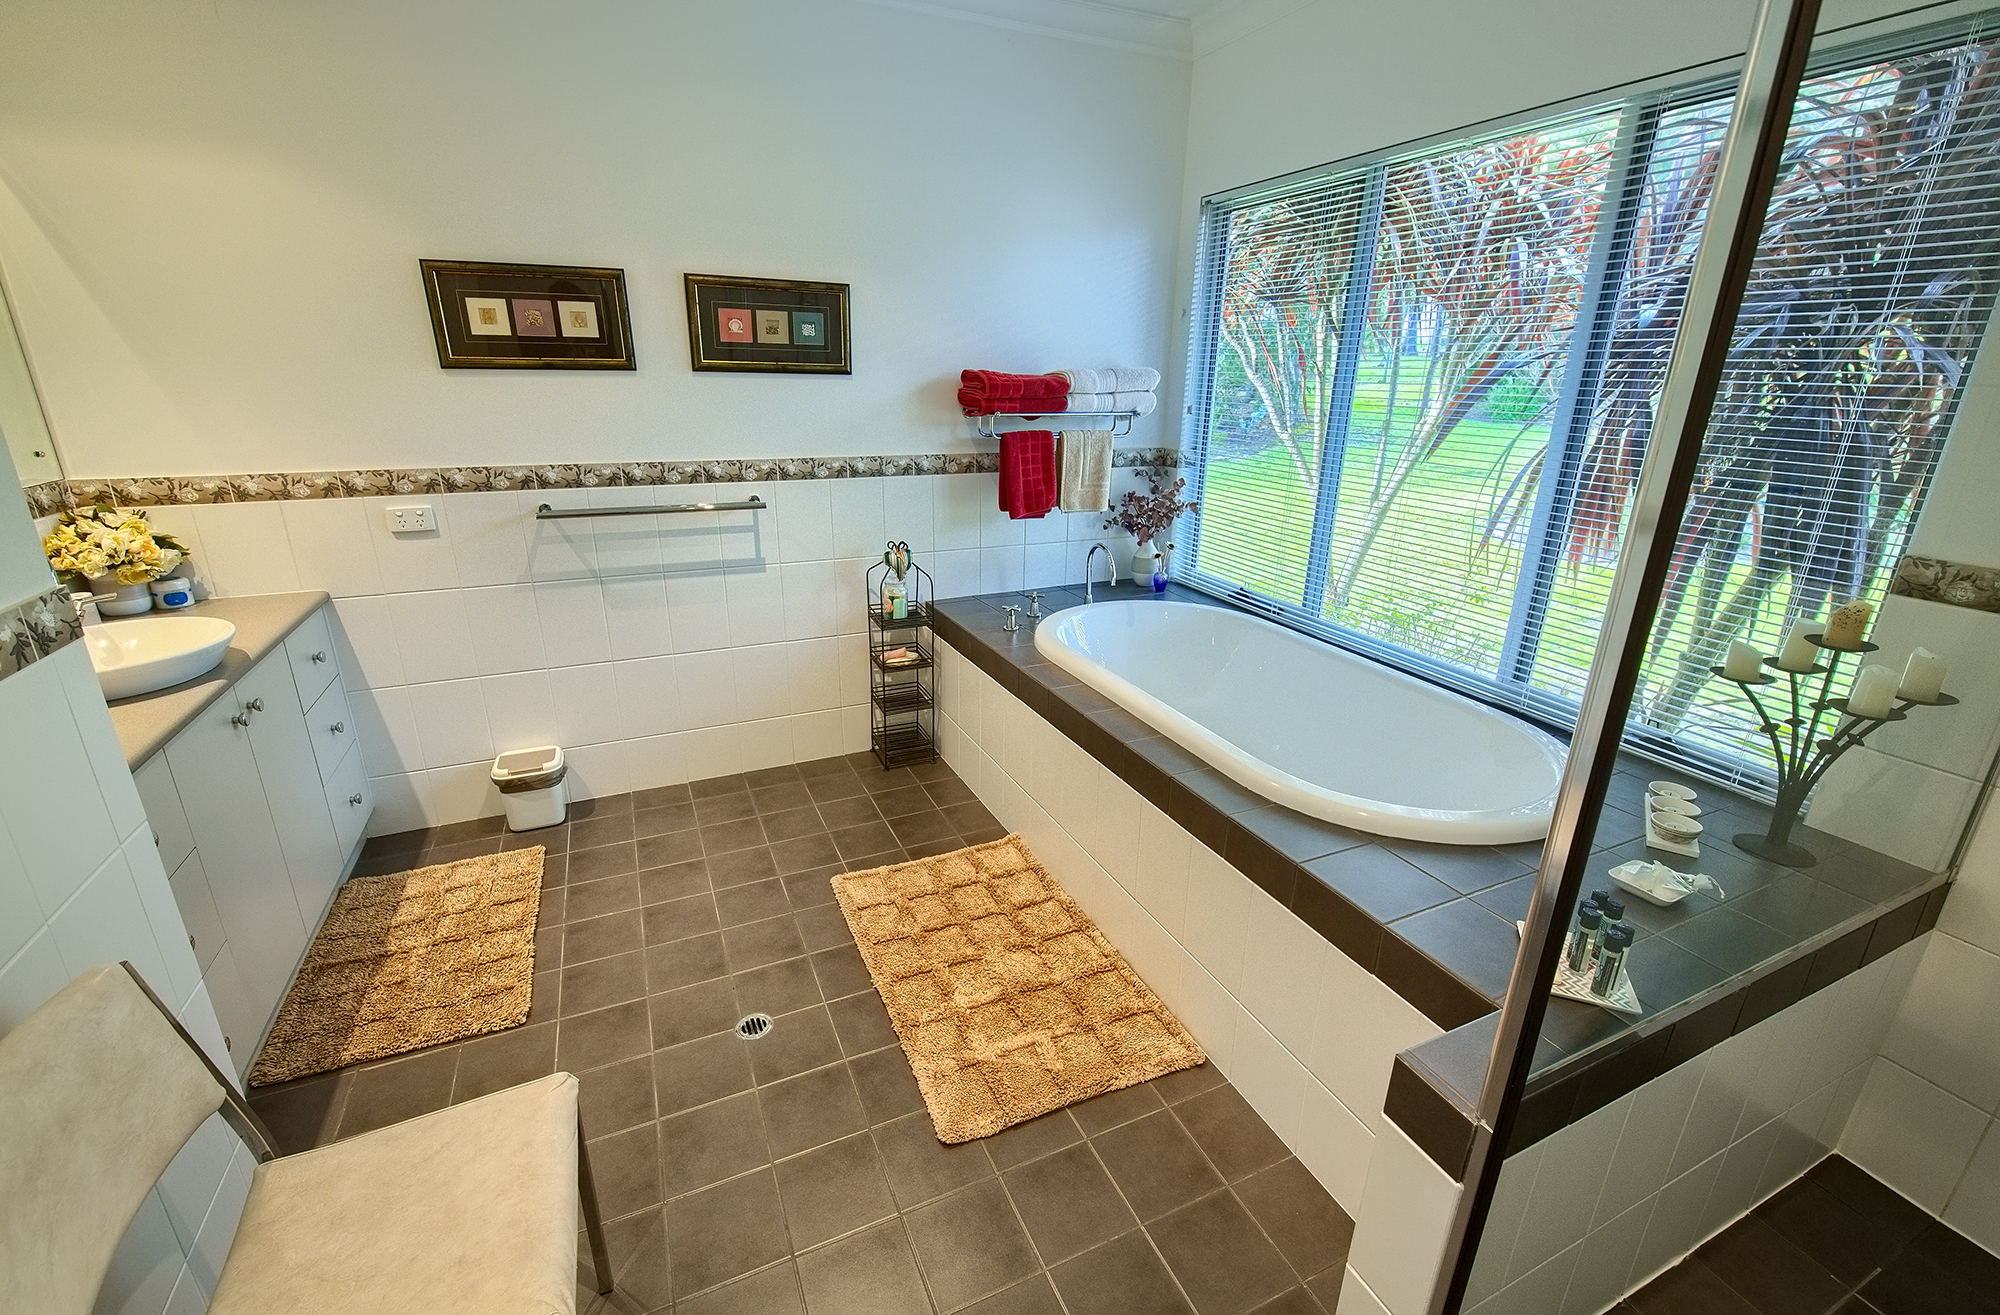 Modern Facilities - The bathroom has a large bath, shower and underfloor heating